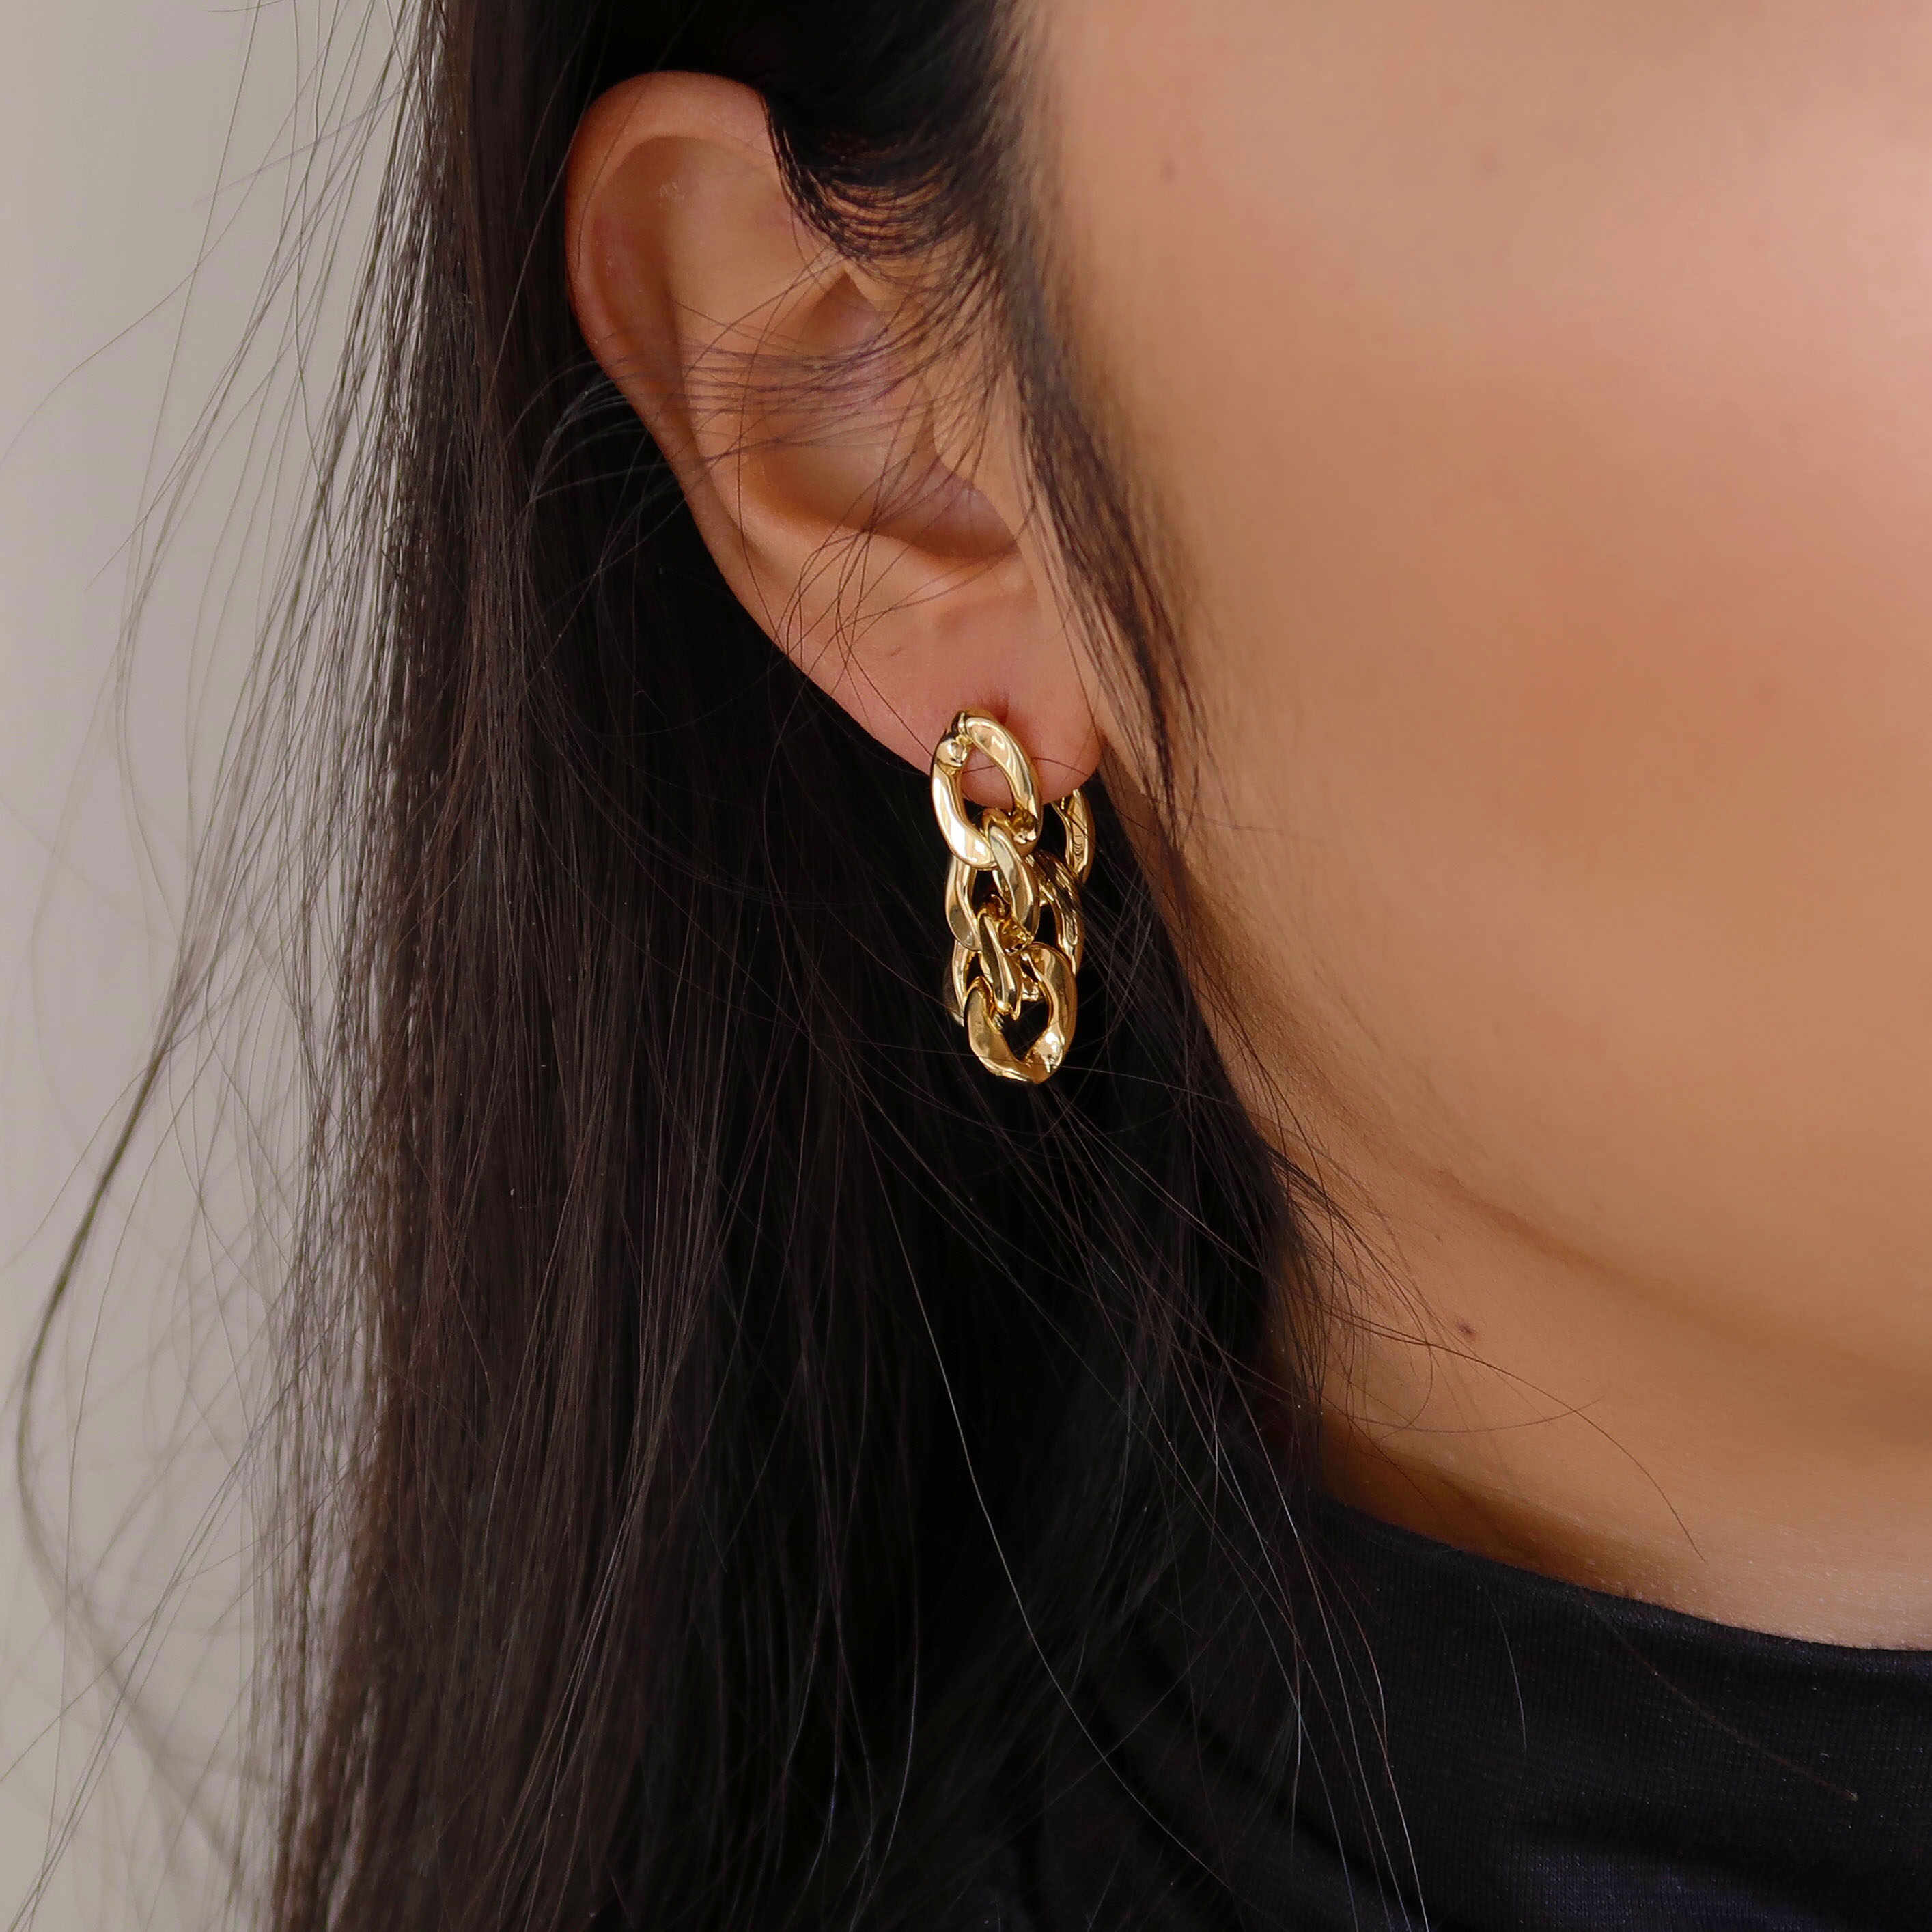 Gift For Her Fashion Jewellery Unique Jewellery Gold Stud Earrings Long Gold Triangle Earrings Shiny